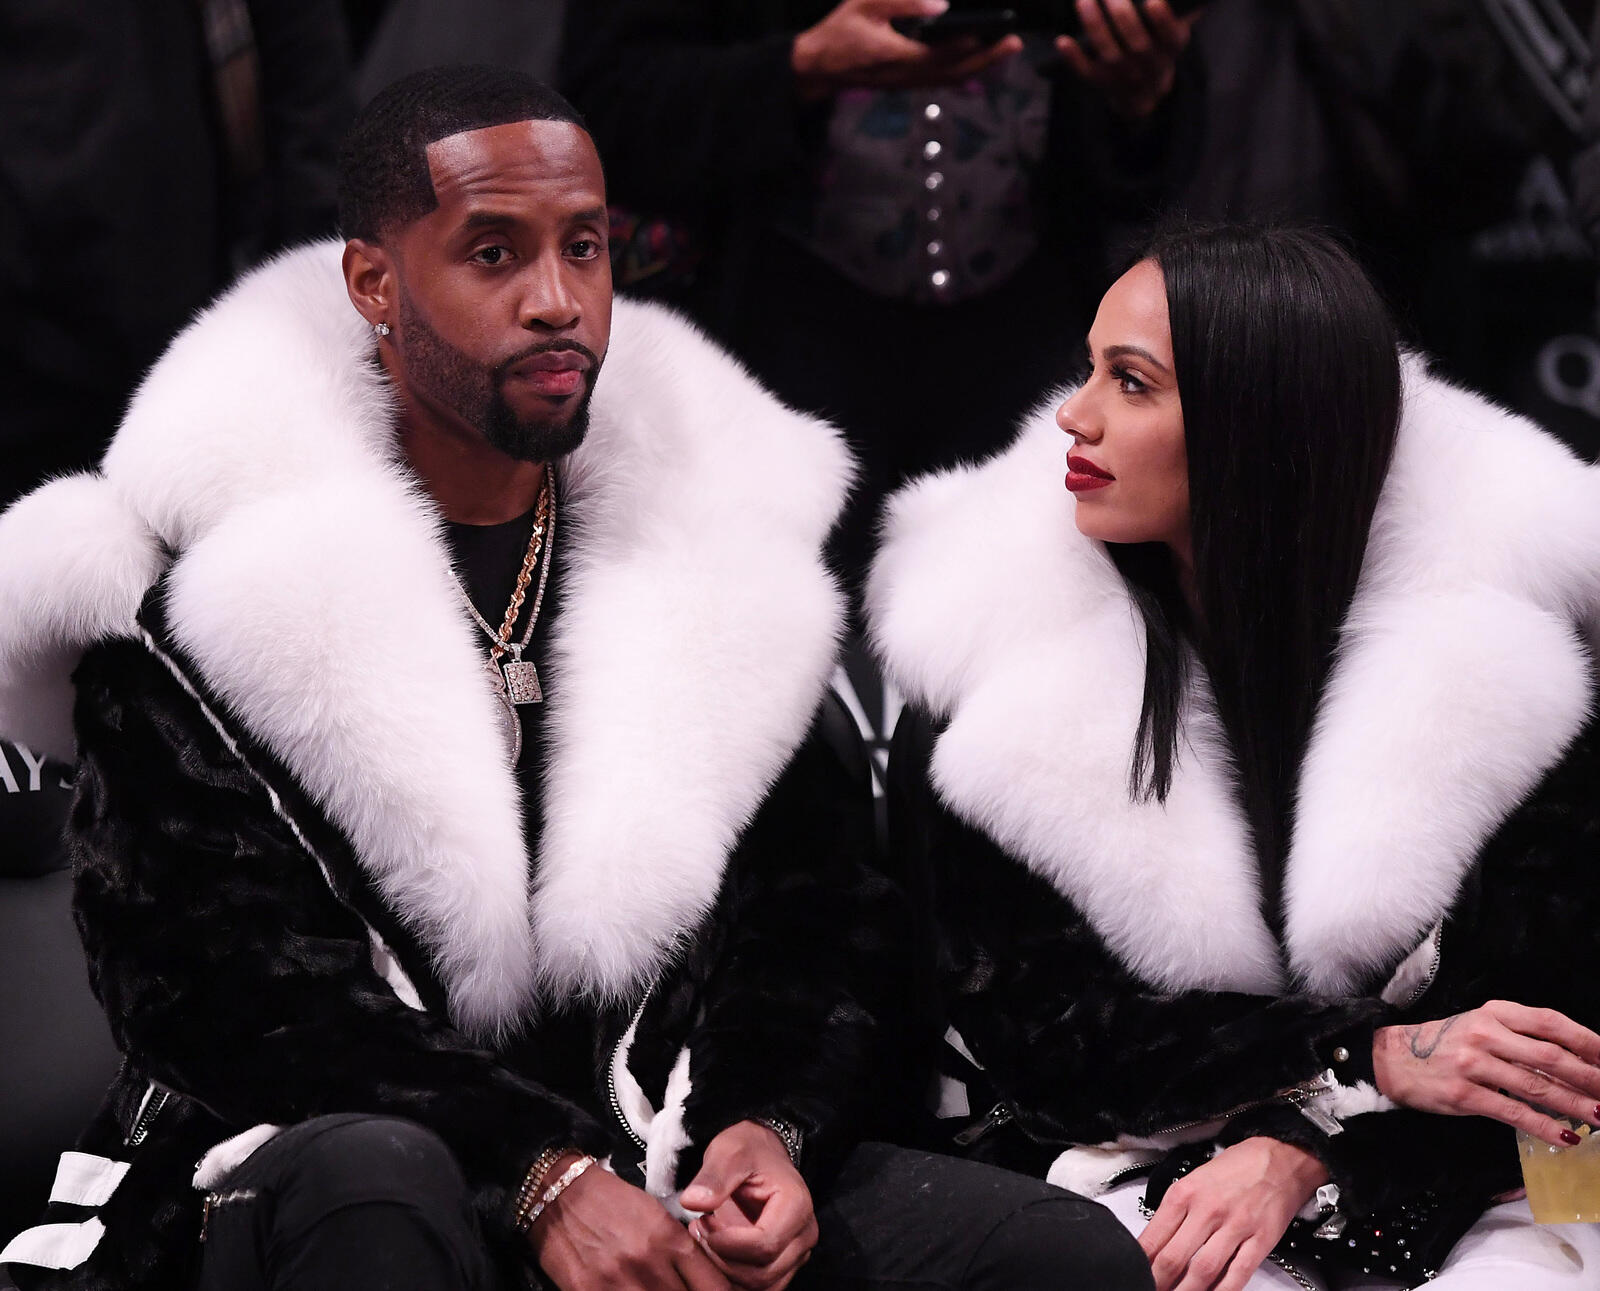 230: 07/16/21 - There's A Thin Line Between Love & Hip Hop! Safaree Accuses Erica Mena Of Destroying $50,000 Worth Of His Personal Property